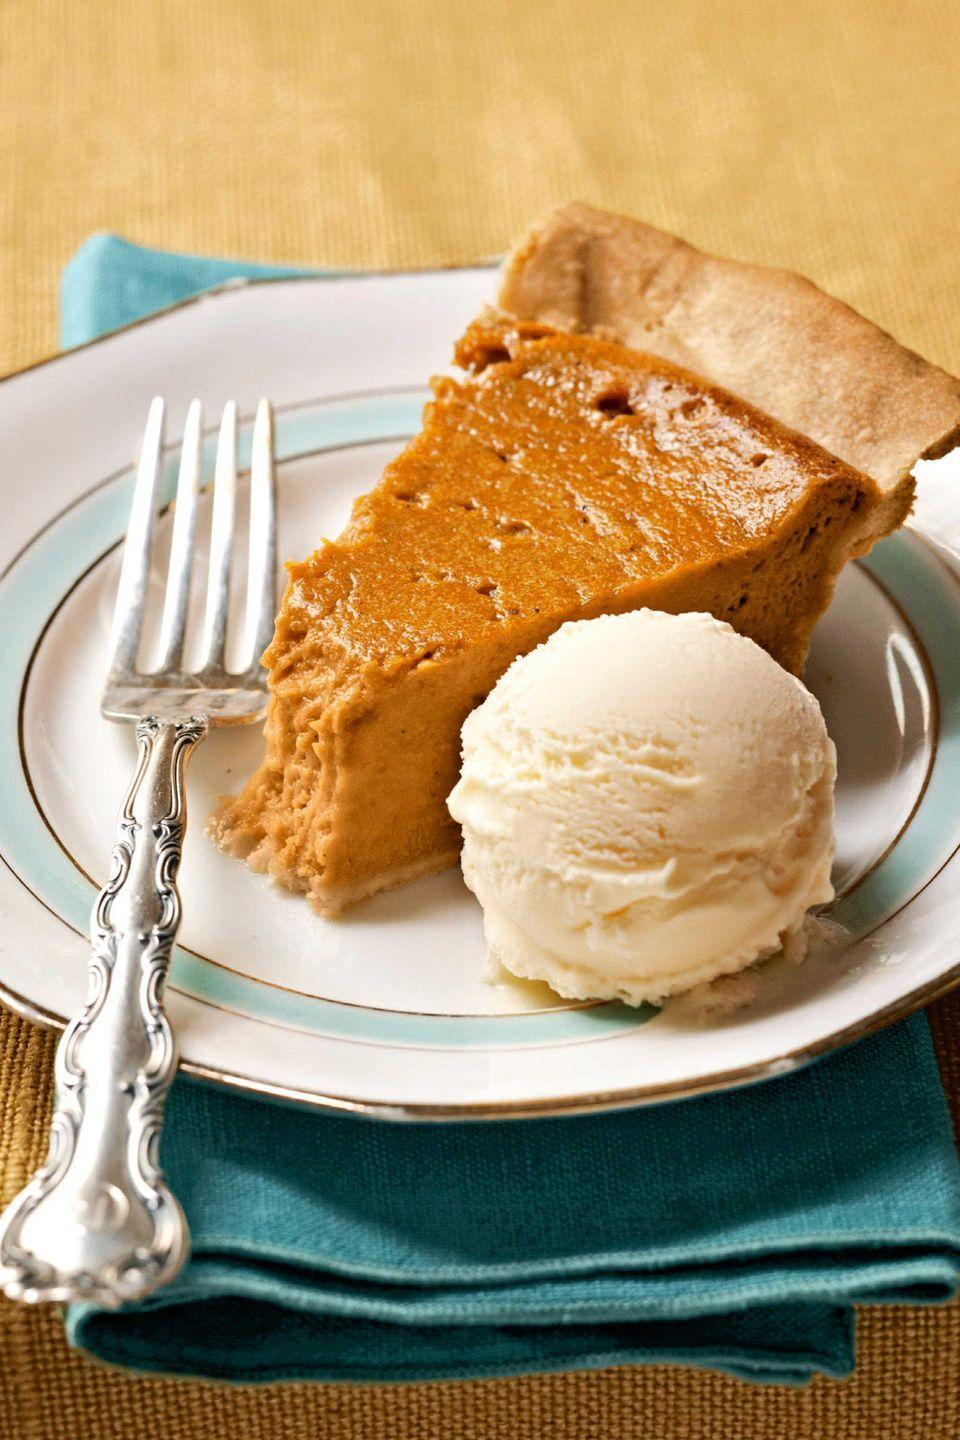 """<p>A regular at the holiday table, this classic pie recipe contains the perfect blend of cinnamon and nutmeg spices.</p><p><strong><a href=""""https://www.countryliving.com/food-drinks/recipes/a19126/sweet-potato-pie-recipe/"""" rel=""""nofollow noopener"""" target=""""_blank"""" data-ylk=""""slk:Get the recipe"""" class=""""link rapid-noclick-resp"""">Get the recipe</a>.</strong></p><p><a class=""""link rapid-noclick-resp"""" href=""""https://www.lodgecastiron.com/product/seasoned-cast-iron-pie-pan?sku=BW9PIE"""" rel=""""nofollow noopener"""" target=""""_blank"""" data-ylk=""""slk:SHOP CAST IRON PIE PANS"""">SHOP CAST IRON PIE PANS</a></p>"""